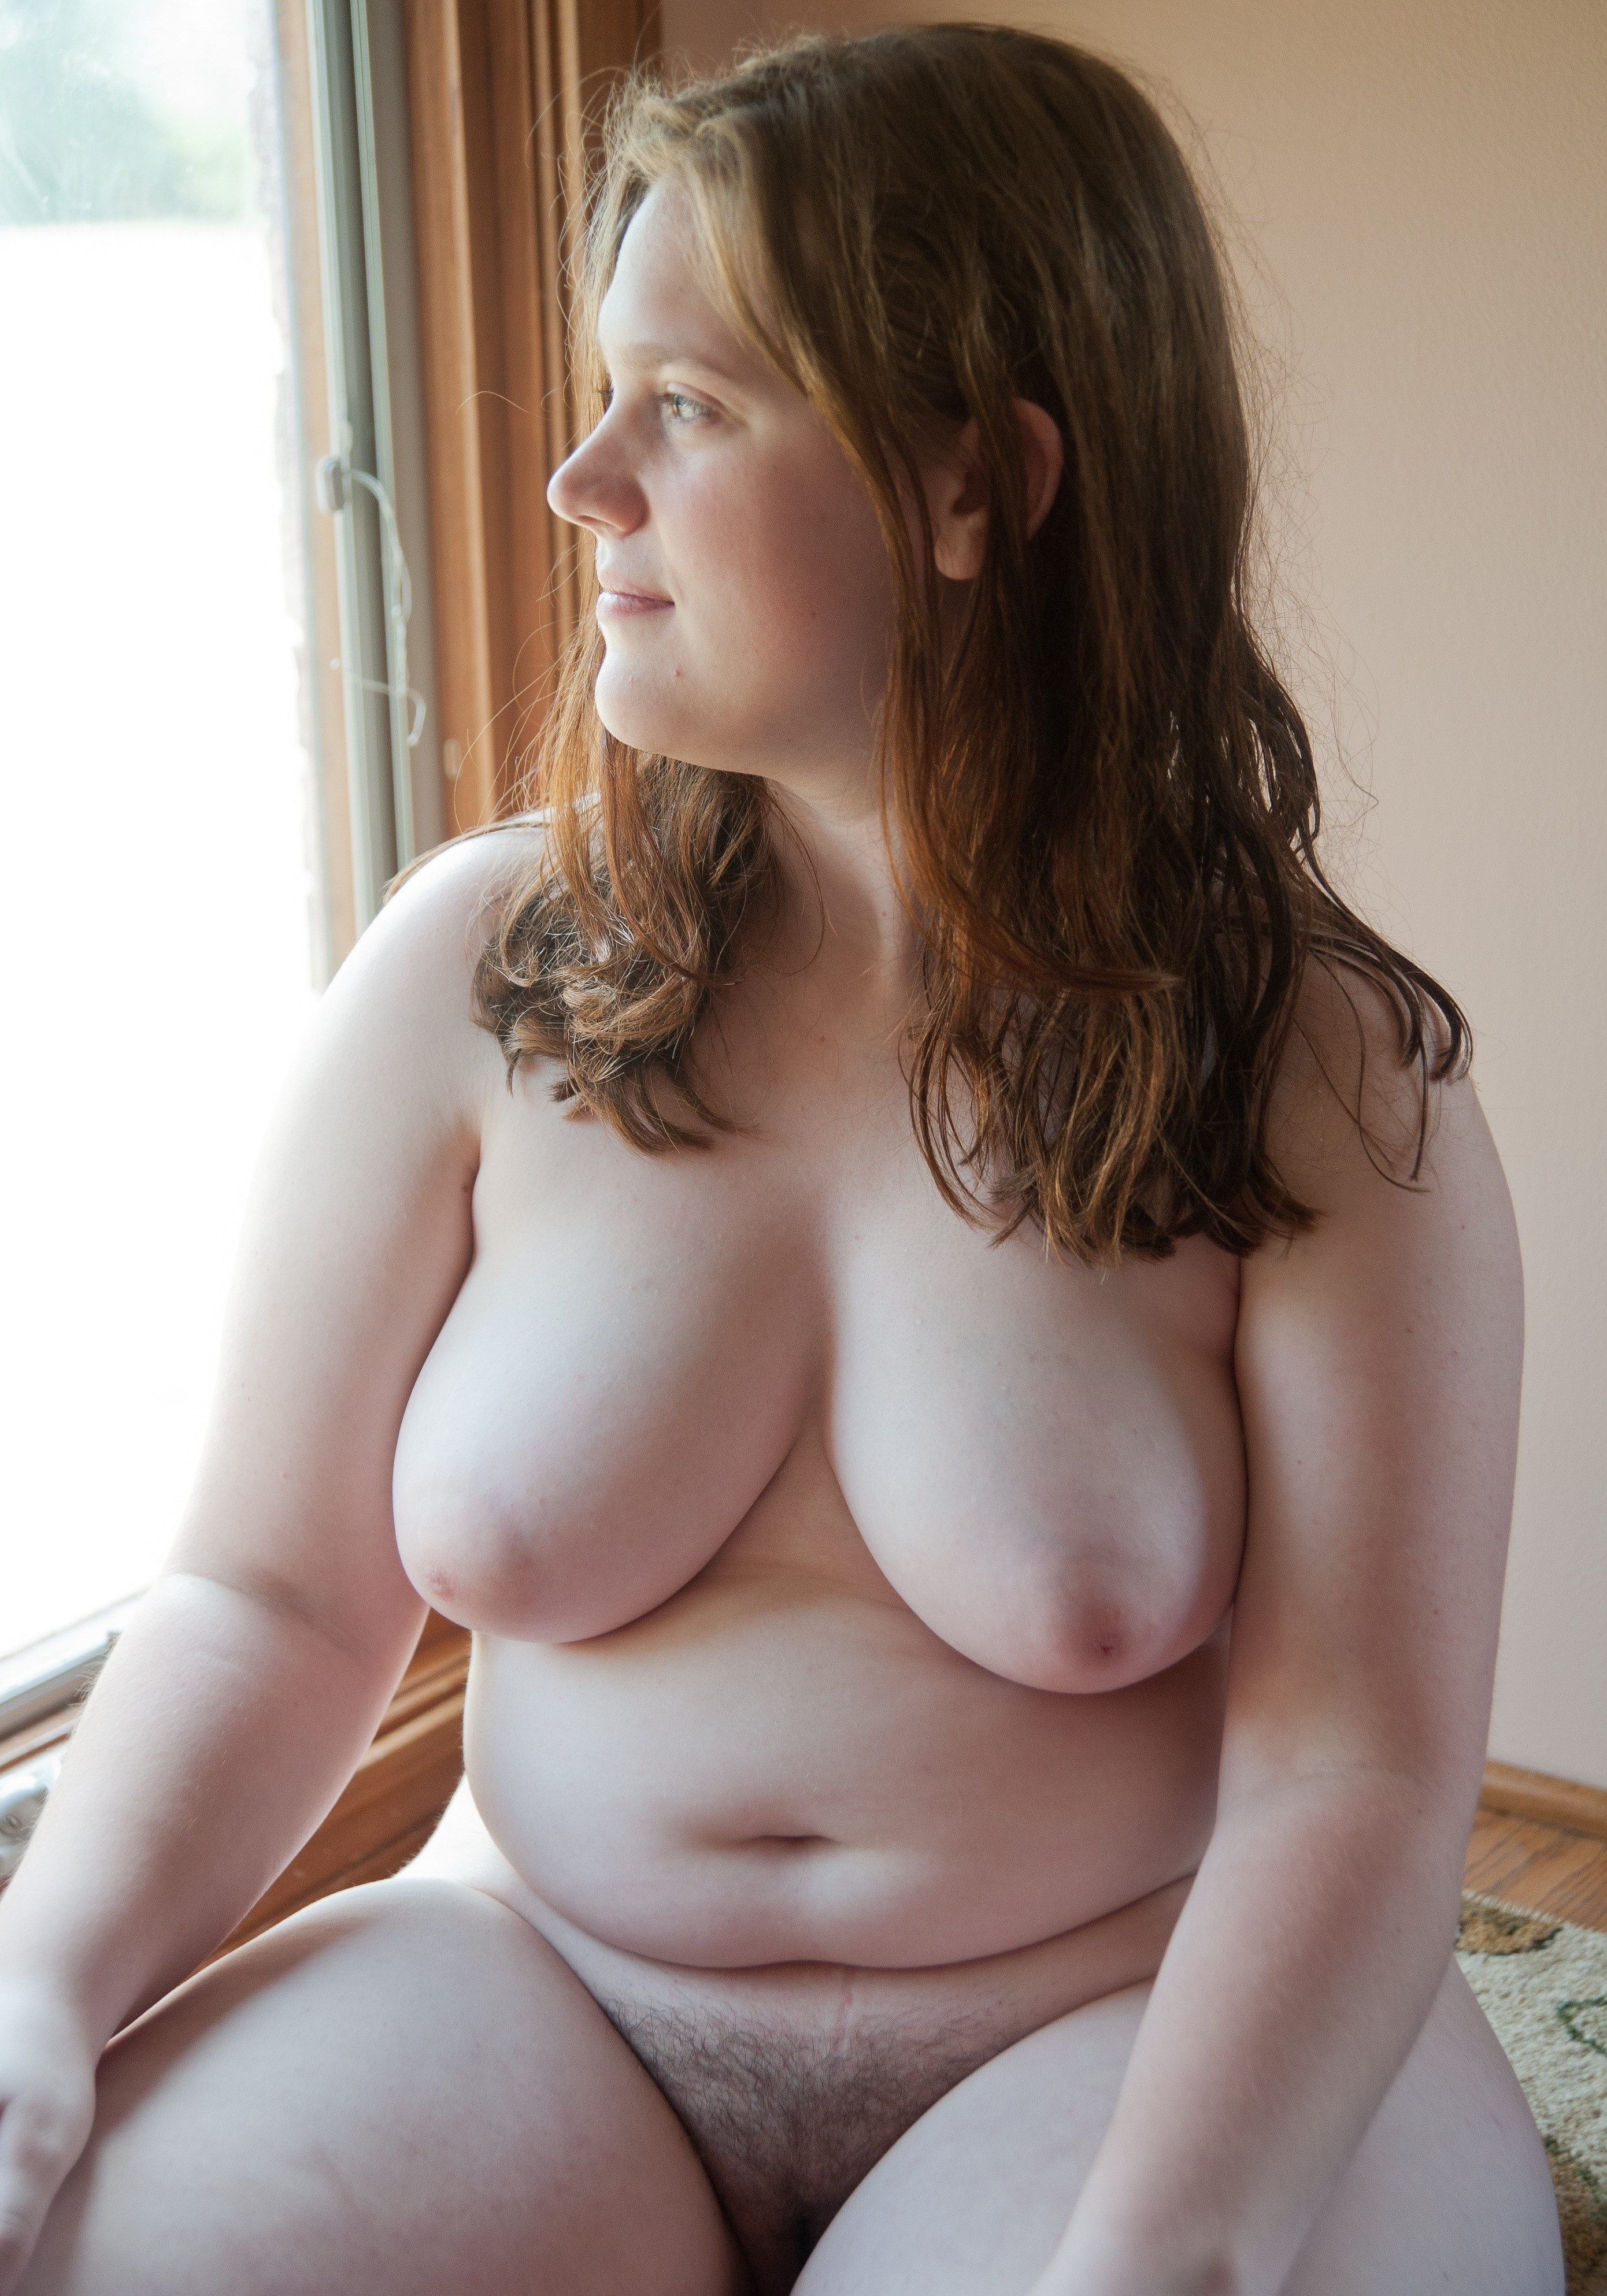 fat goth girl naked